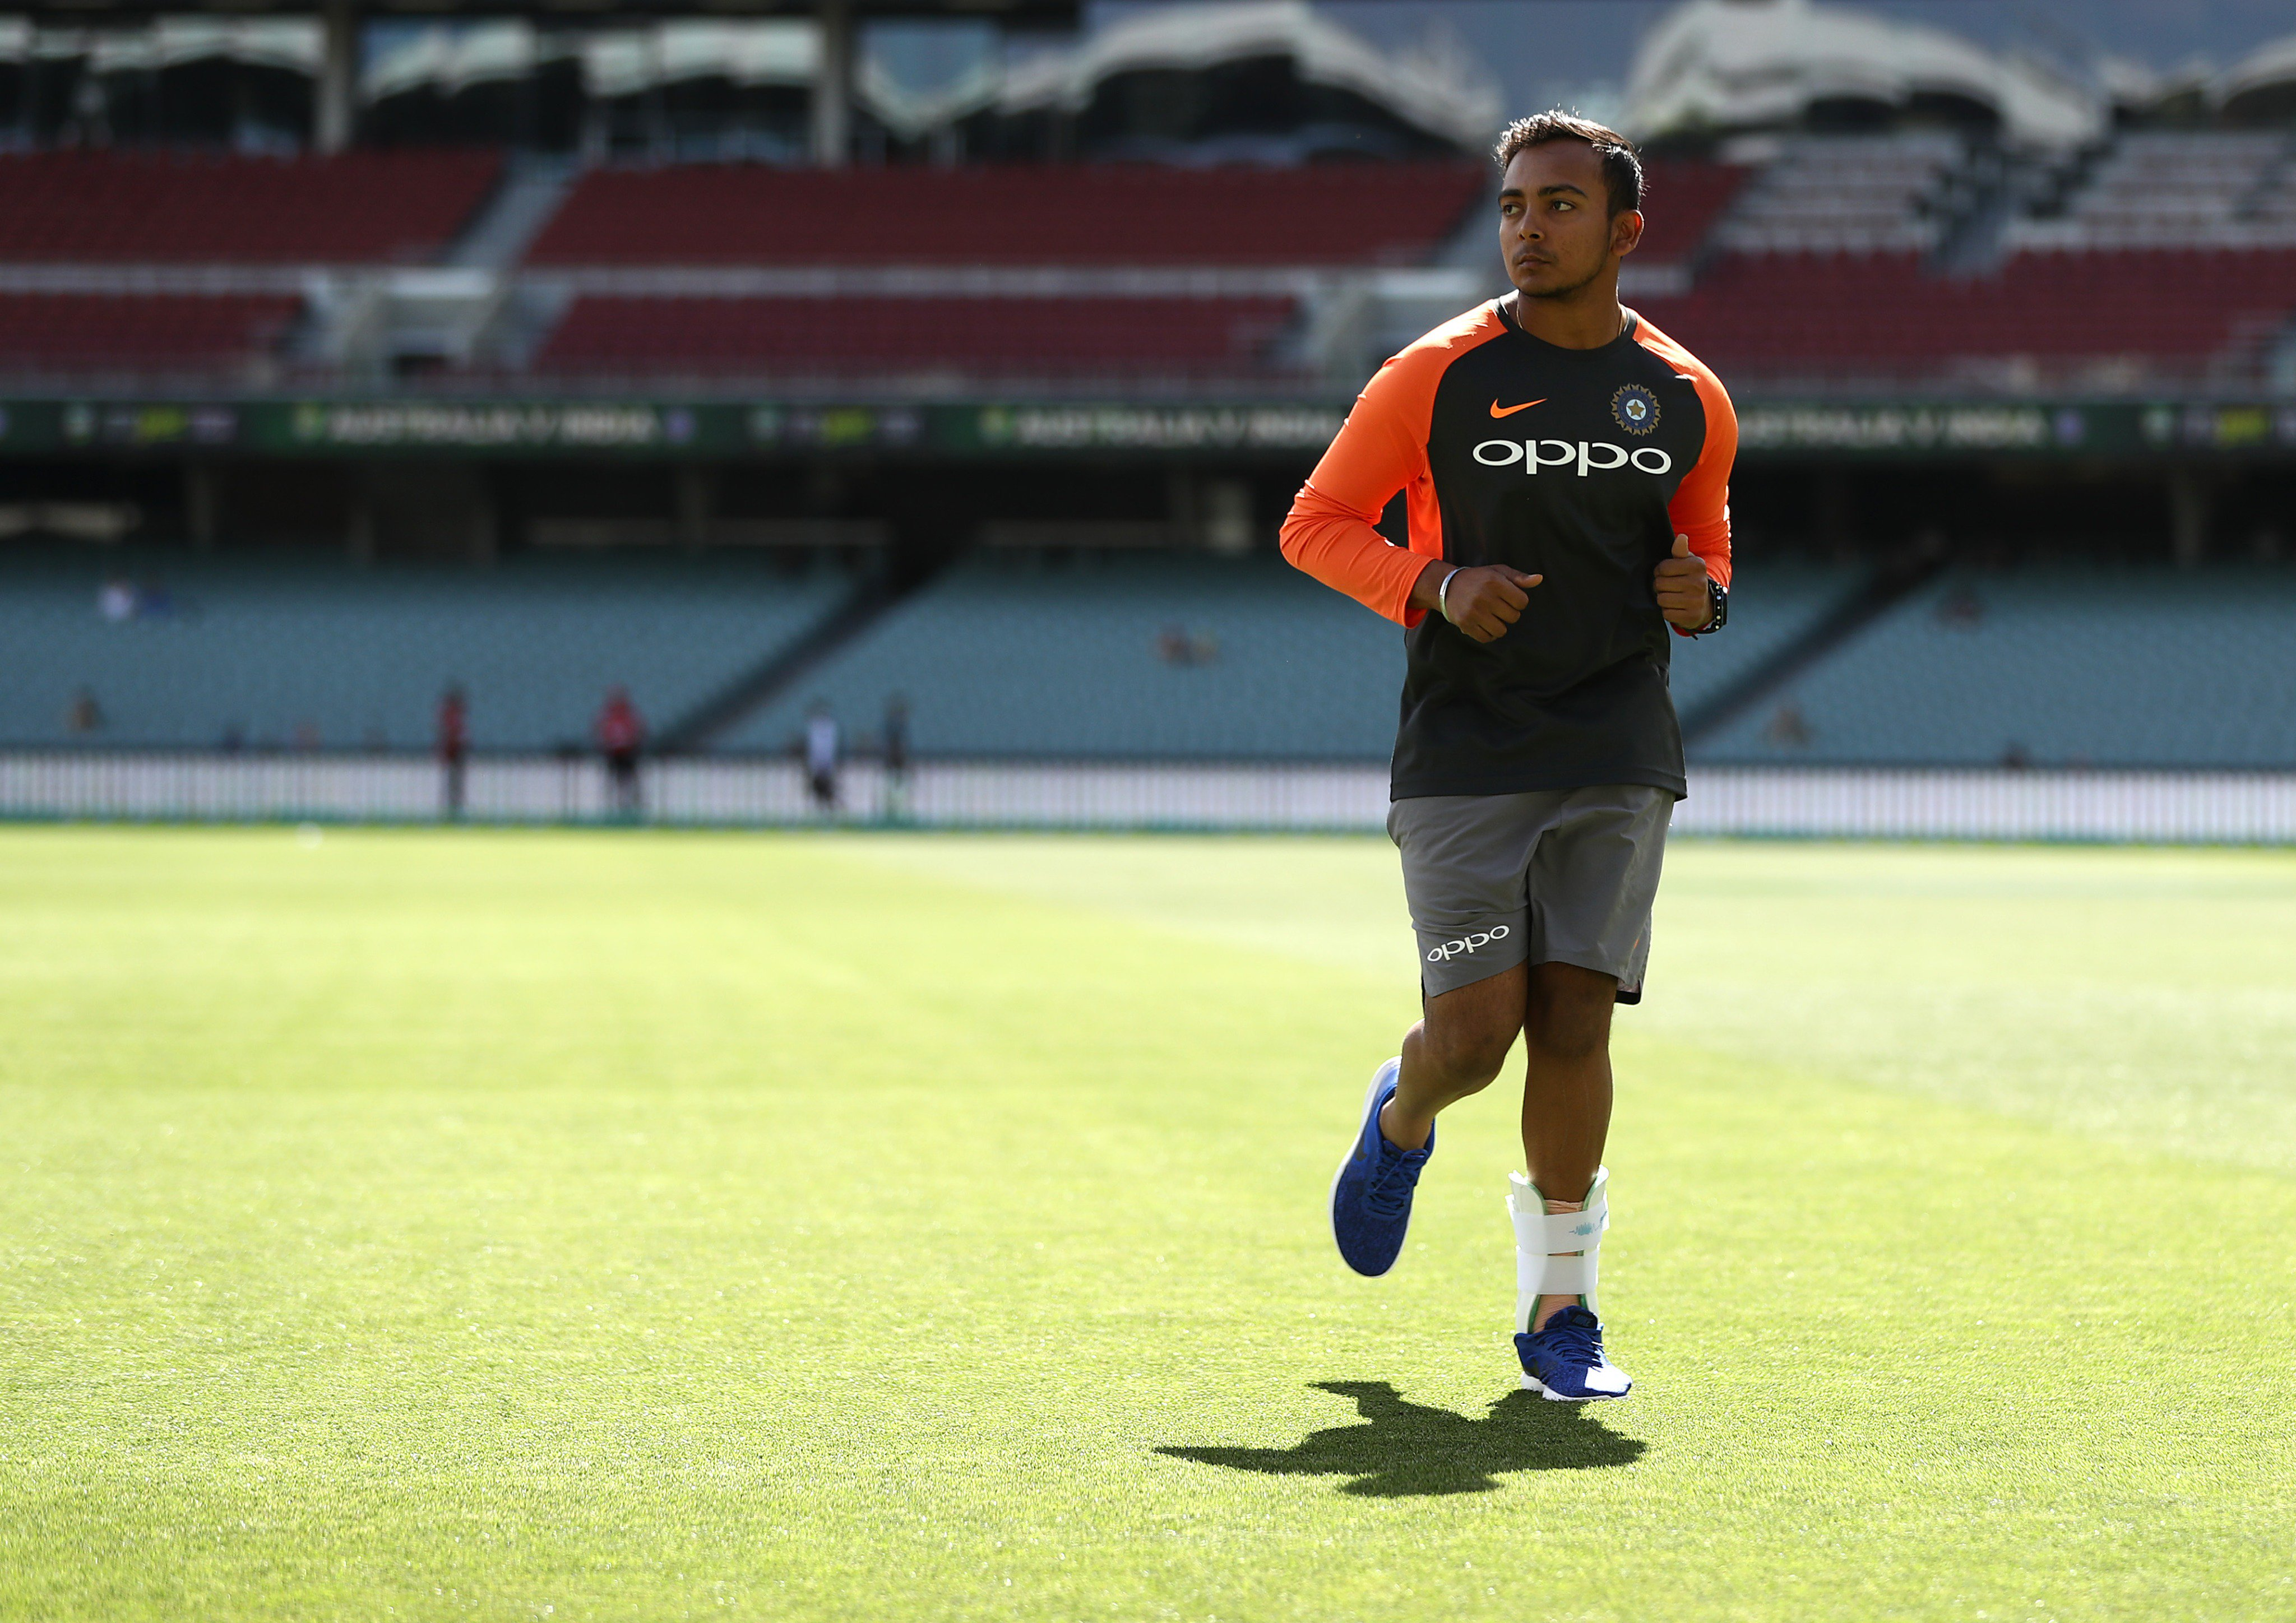 Prithvi Shaw suspended for a doping violation